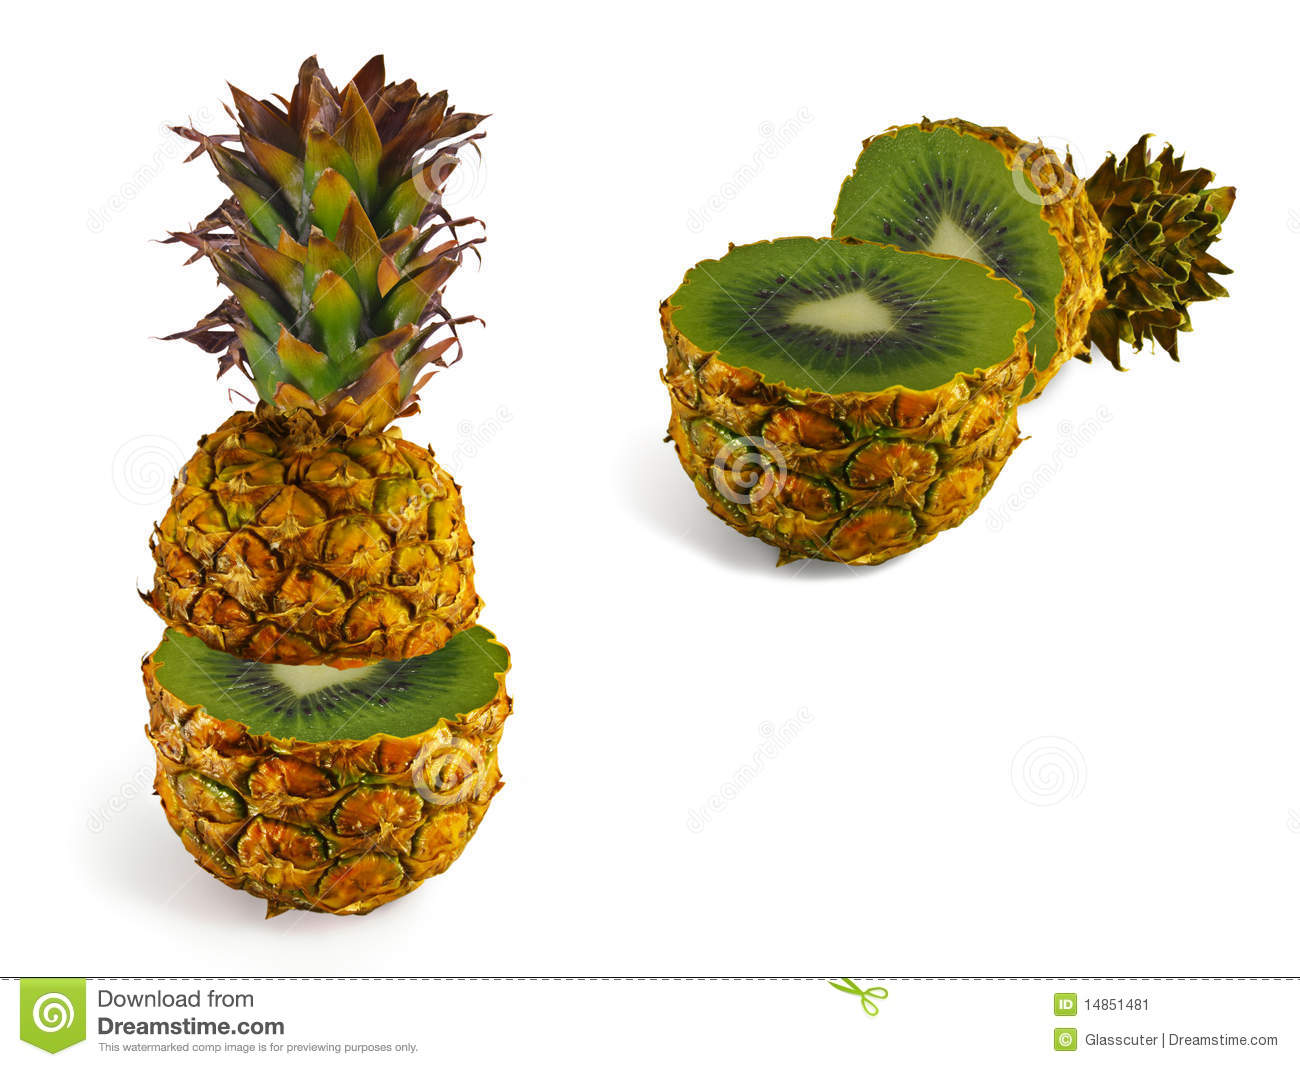 The transformation of pineapple in kiwi